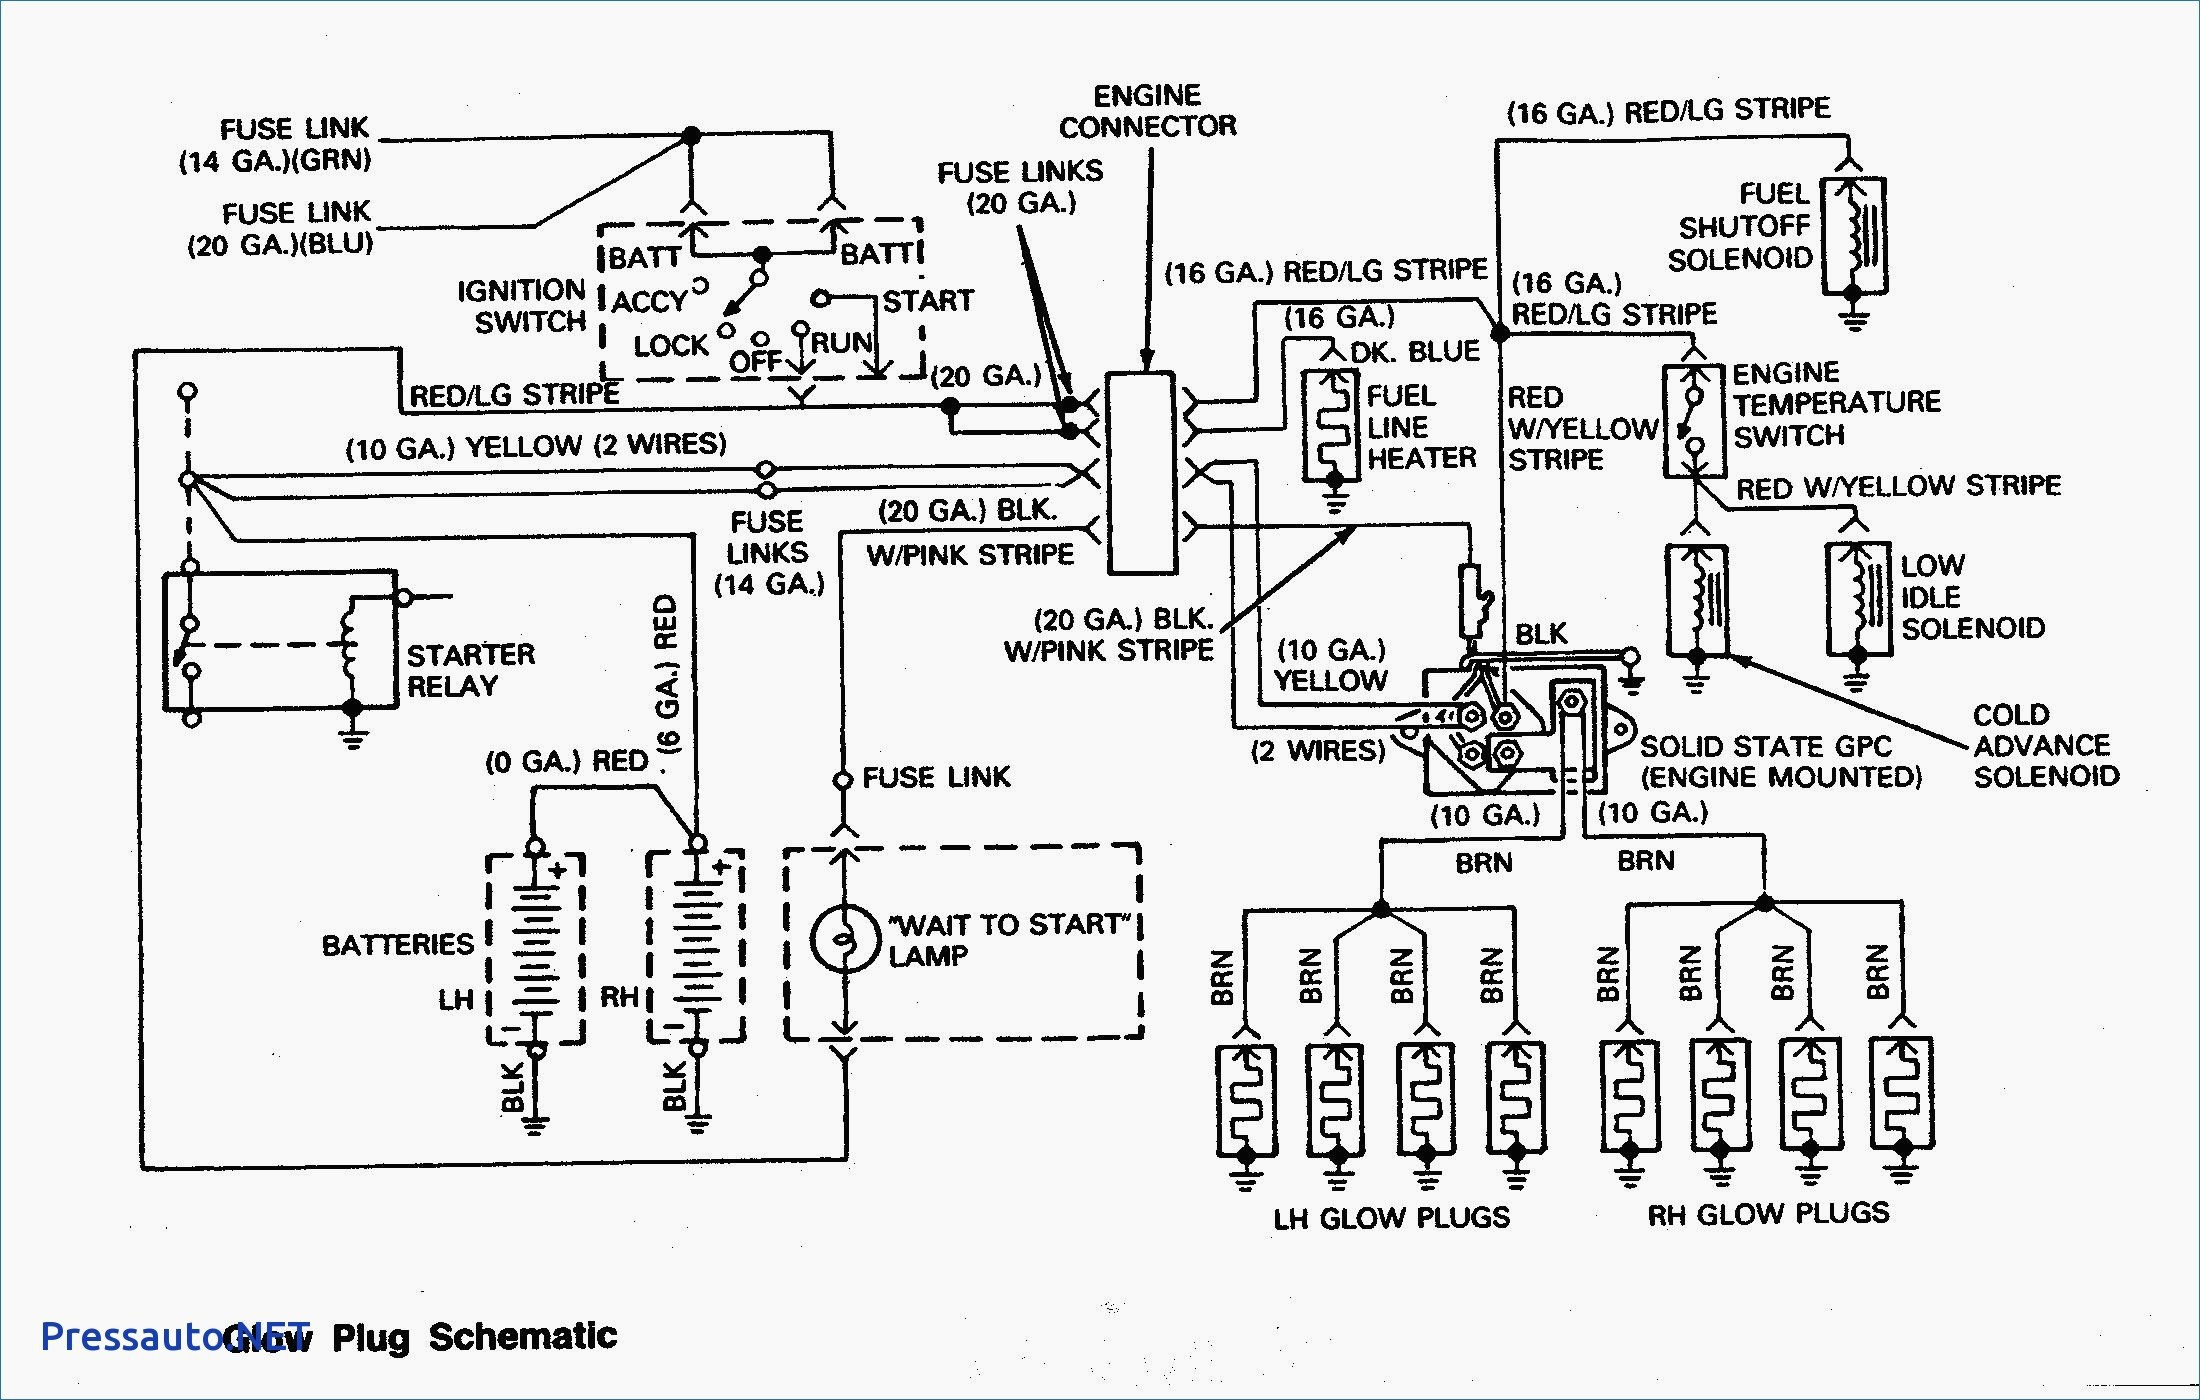 6 0 powerstroke ficm wiring diagram 6 0 powerstroke wiring harness diagram awesome lb7 glow plug relay wiring diagram 8b lb7 wiring diagram wiring diagram schematic name